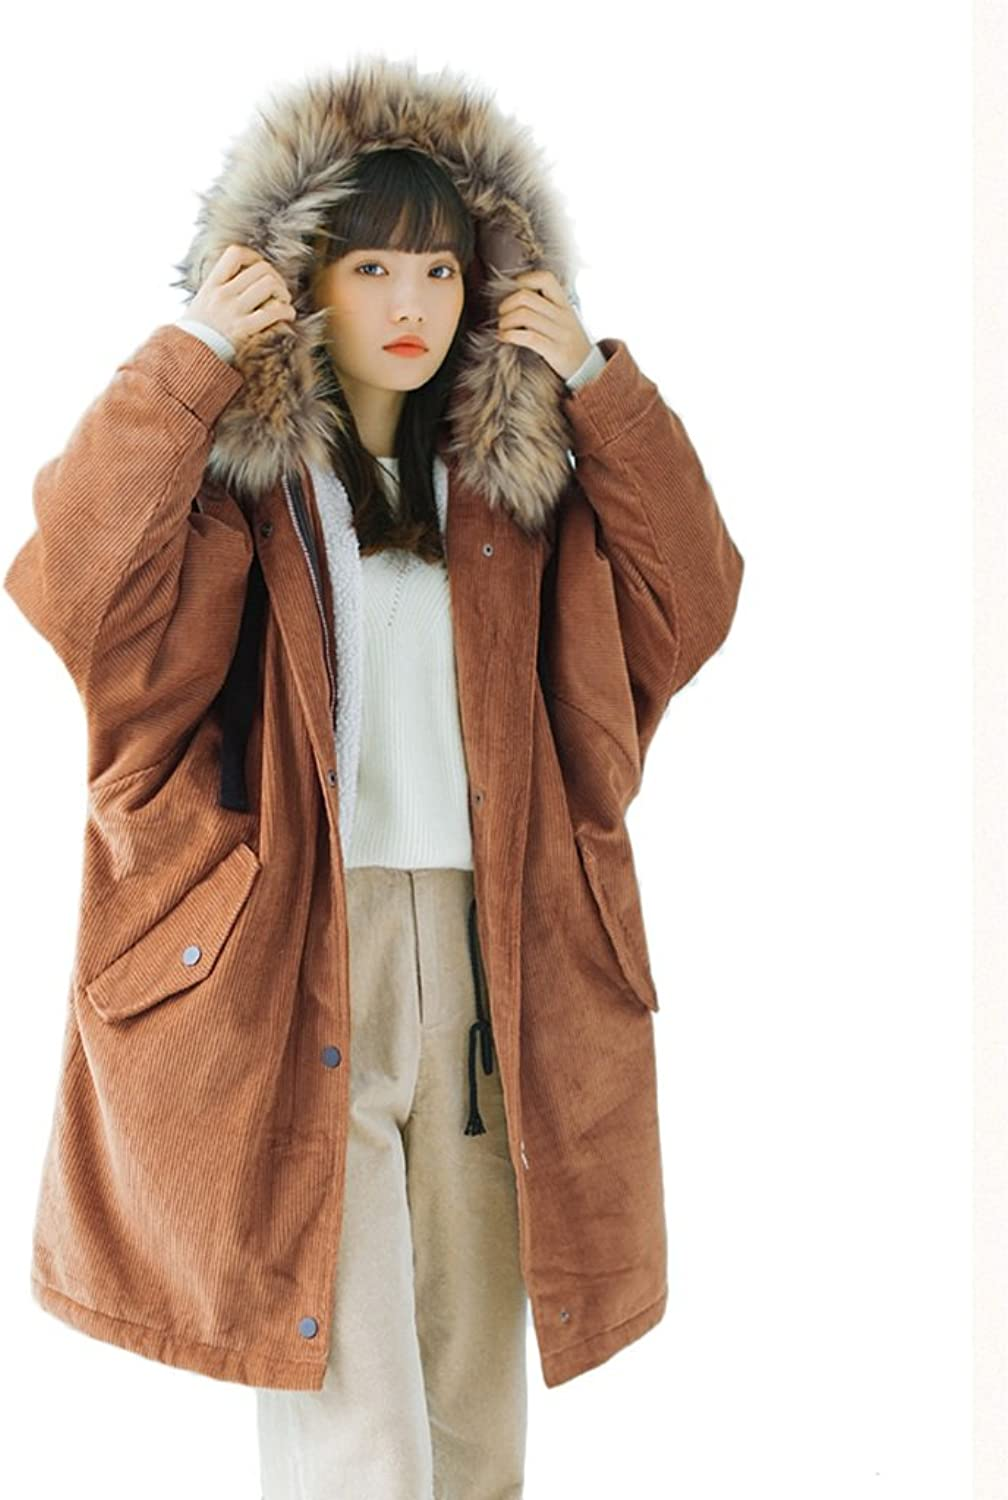 TSINYG Women's Fashion Loose Hooded Jacket Winter Warm Thicken Student Cotton Coat ( color   Brown , Size   M )